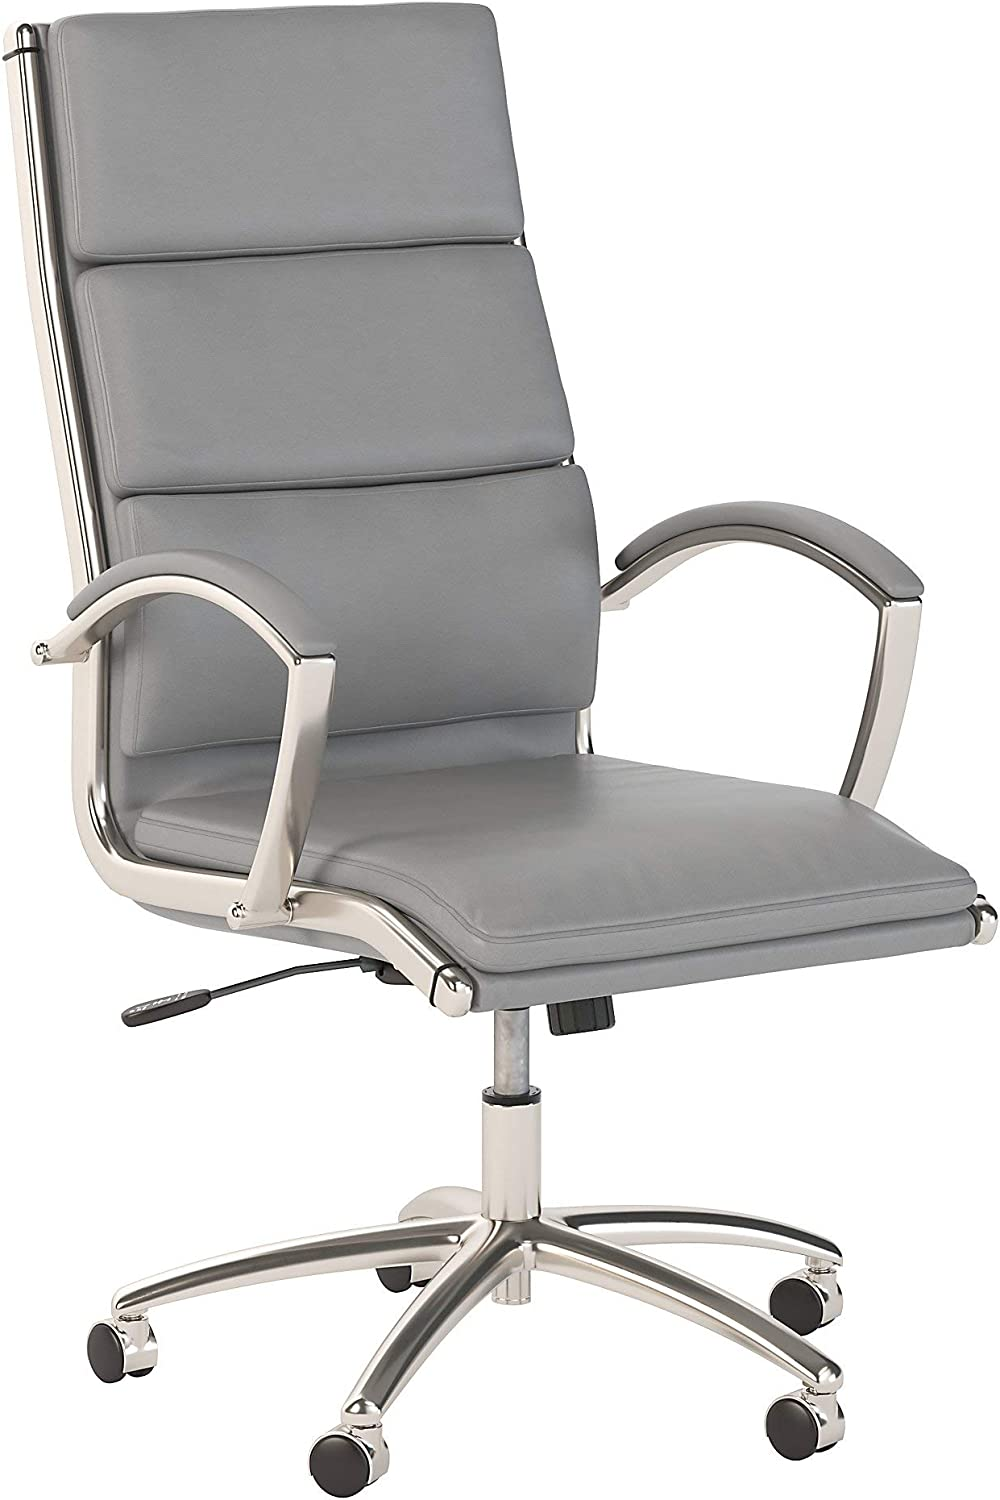 Bush Business Furniture 400 Series High Back Leather Executive Office Chair in Light Gray